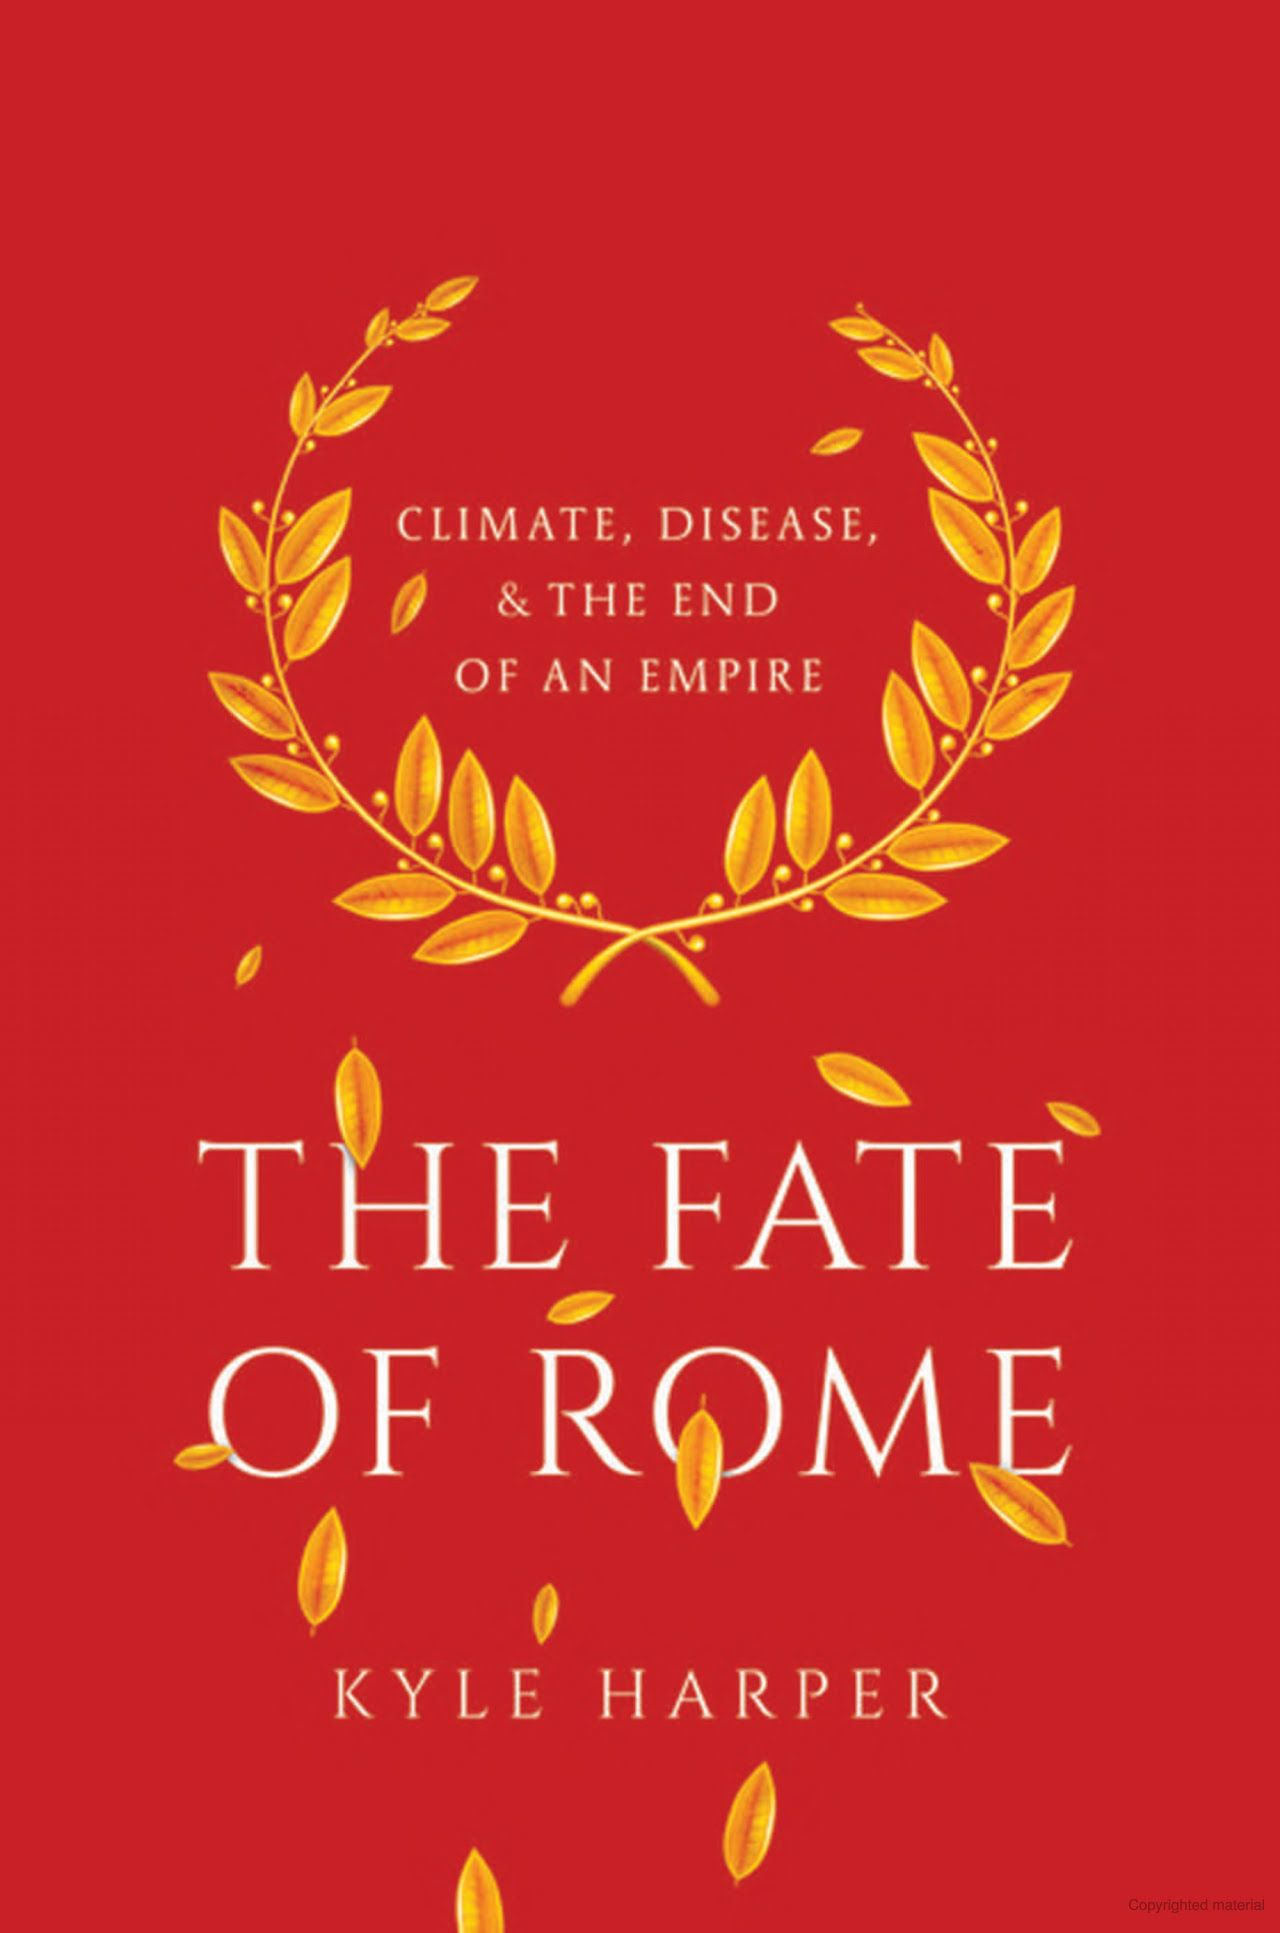 The Fate of Rome Climate, Disease, & the End of an